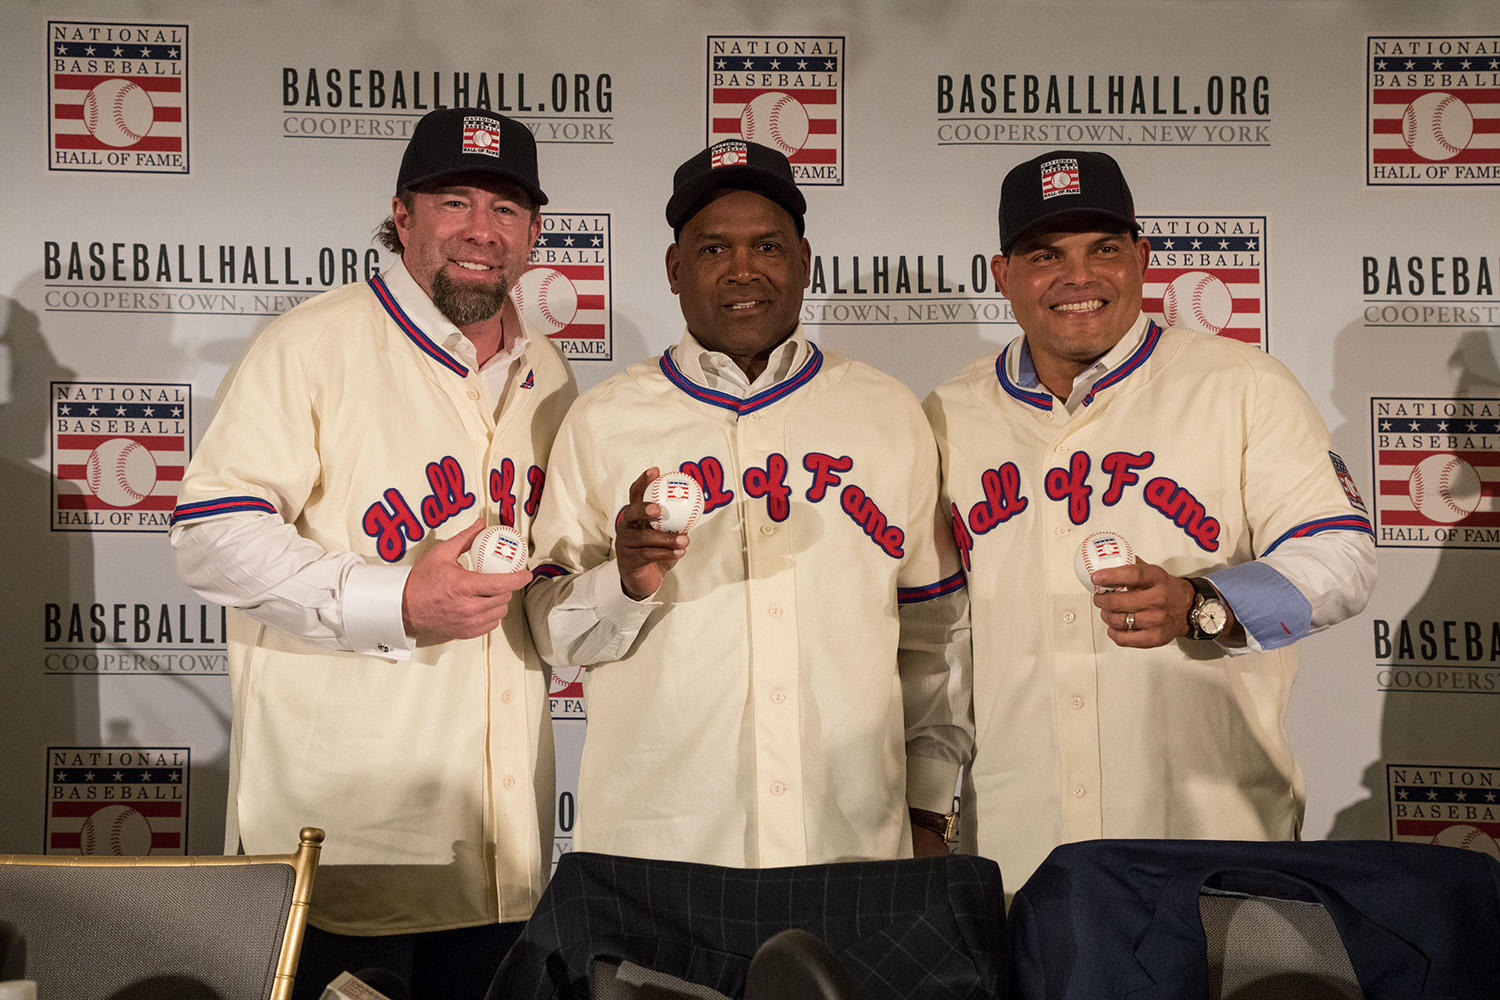 Jeff Bagwell (far left), stands next to Tim Raines (center) and Iván Rodríguez (right) after a press conference held at the St. Regis Hotel in New York City following their election to the Hall of Fame. (Milo Stewart Jr. / National Baseball Hall of Fame)